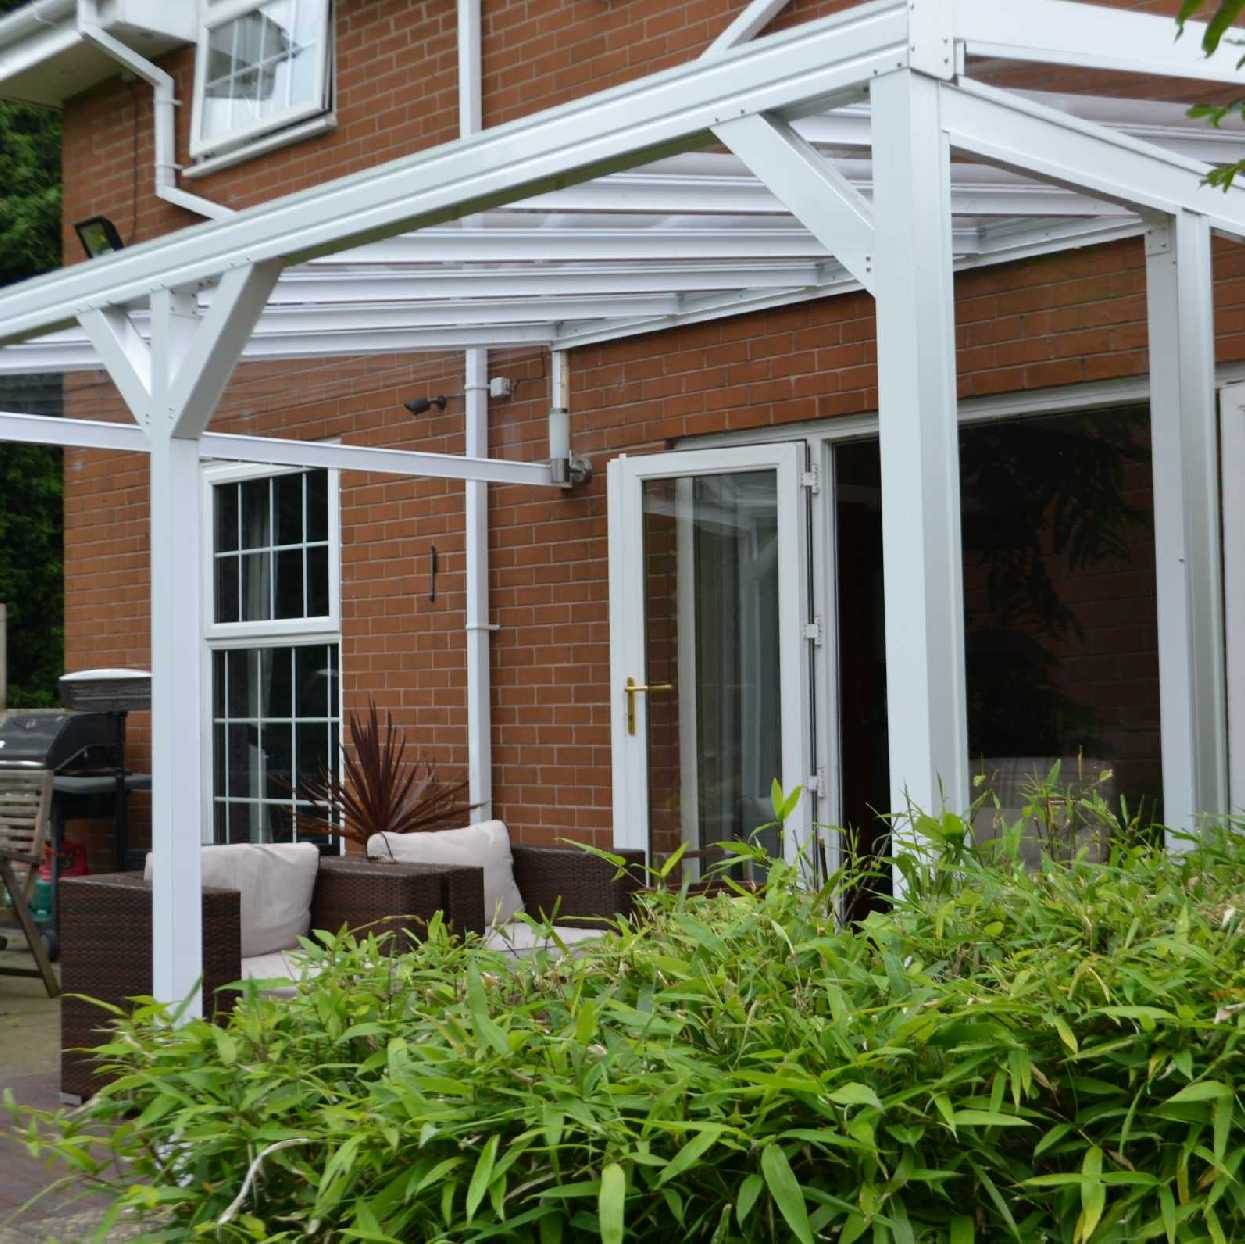 Omega Smart Lean-To Canopy with 6mm Glass Clear Plate Polycarbonate Glazing - 2.1m (W) x 1.5m (P), (2) Supporting Posts from Omega Build